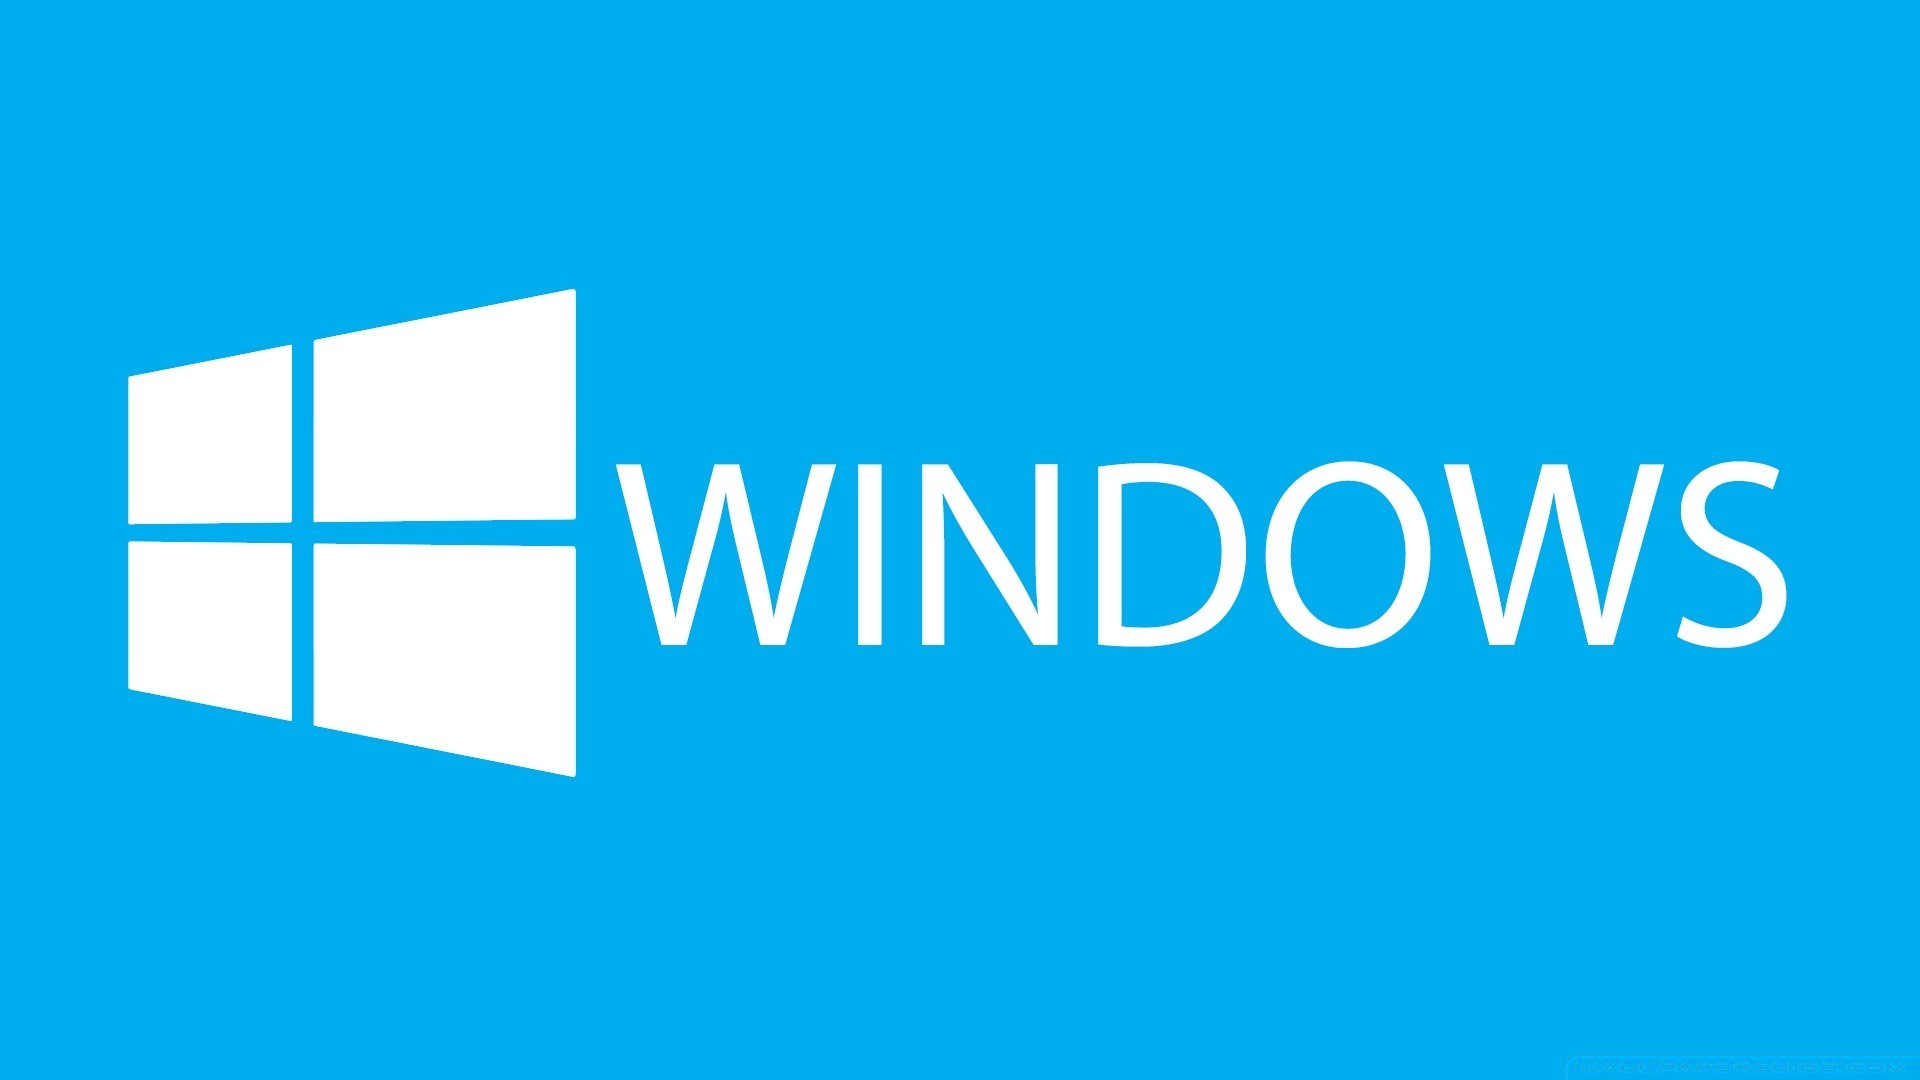 Windows 8 синий